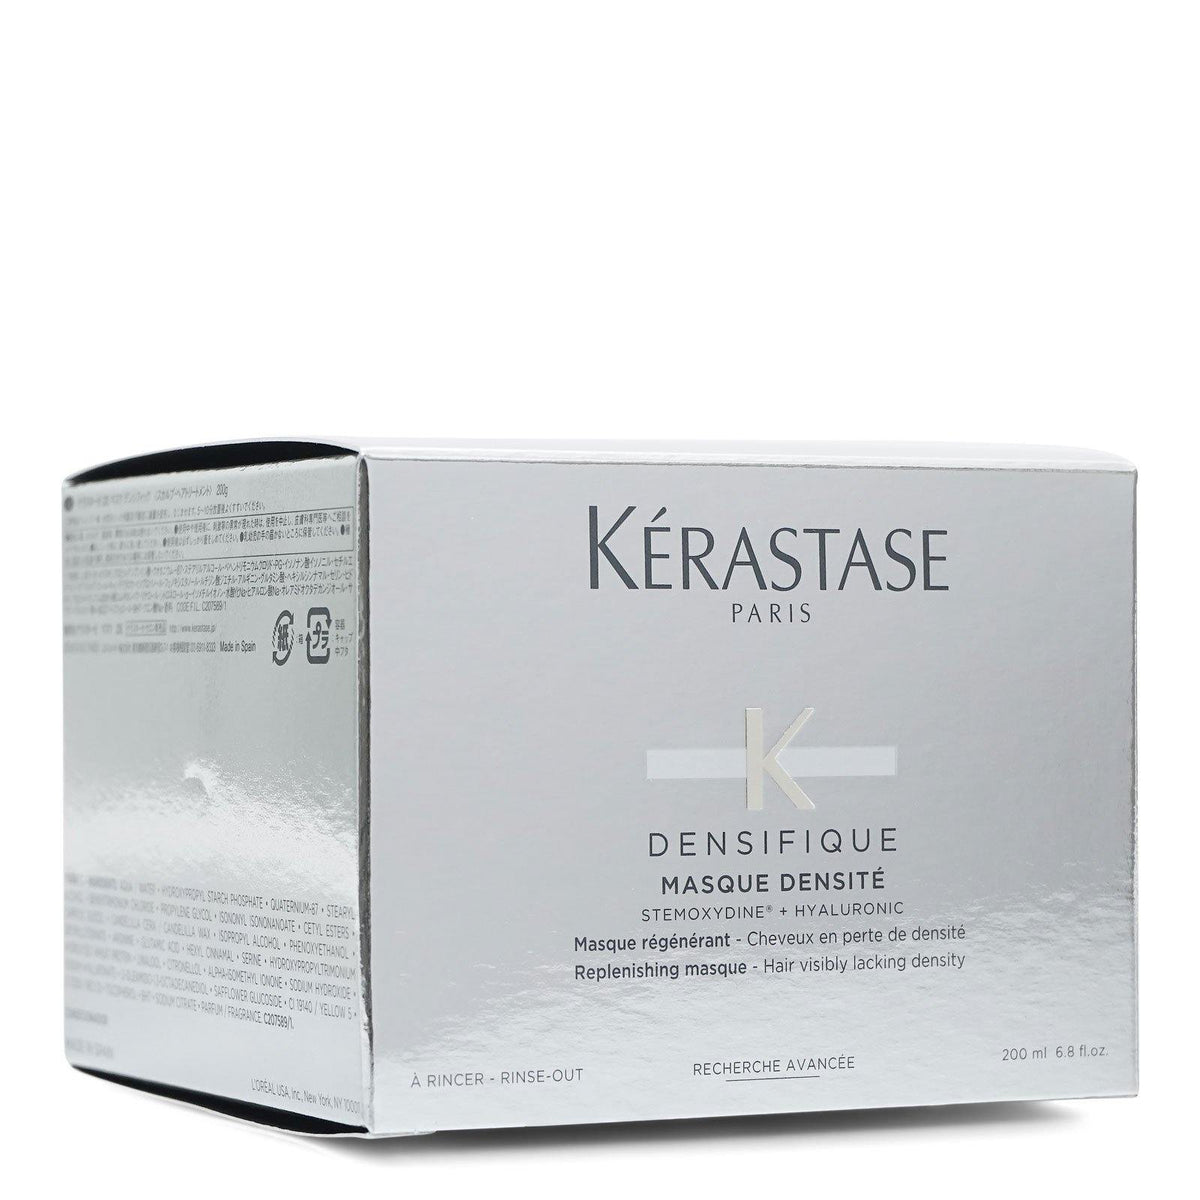 Kerastase Densifique Masque Densite Replenishing Masque 200ml/6.8 fl oz (3/cs)